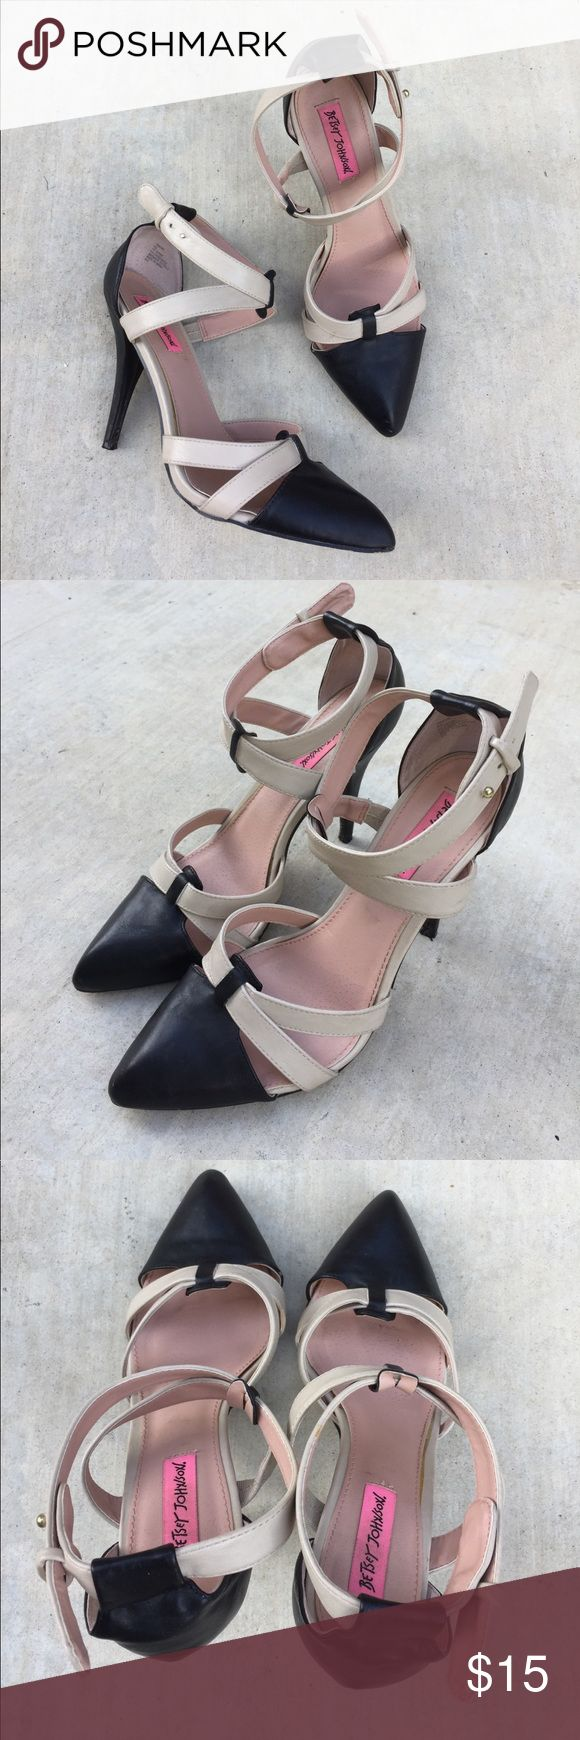 Betsey Johnson Twwine Black & cream strappy heels Gently worn , size 8.5 , heel is 4.5 inches , done glue marks on top sole of shoe and ball is missing from fastener as shown , the fastener still works , price reflects this Betsey Johnson Shoes Heels